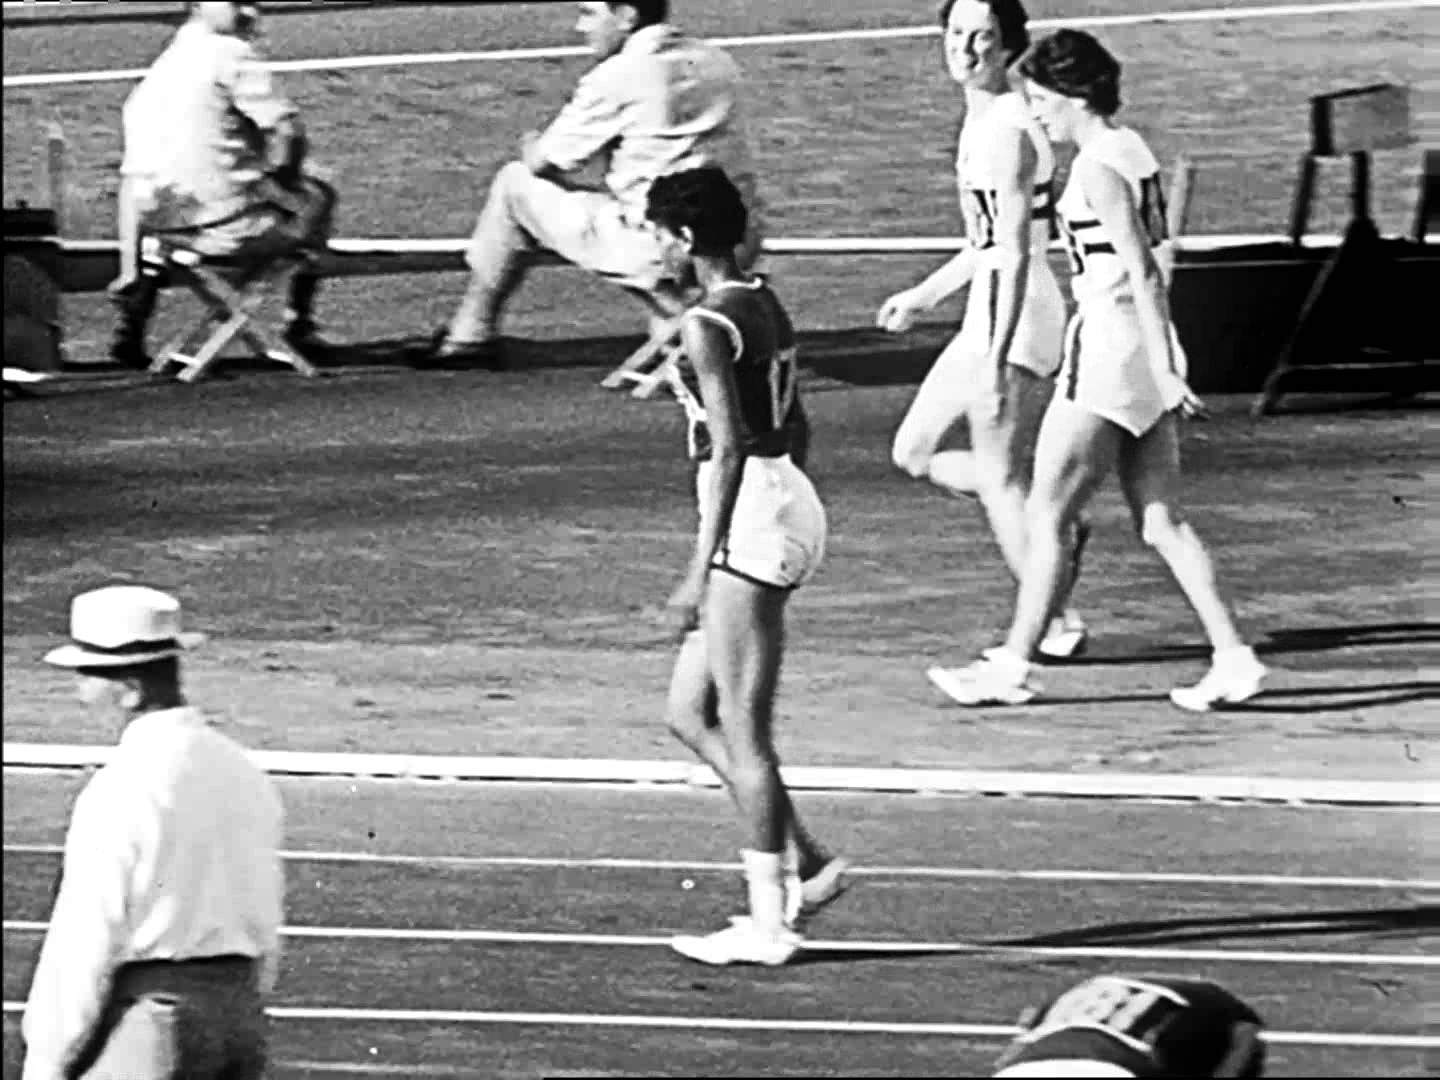 Wilma Rudolph, 1940-1994: 'The Fastest Woman in the World'